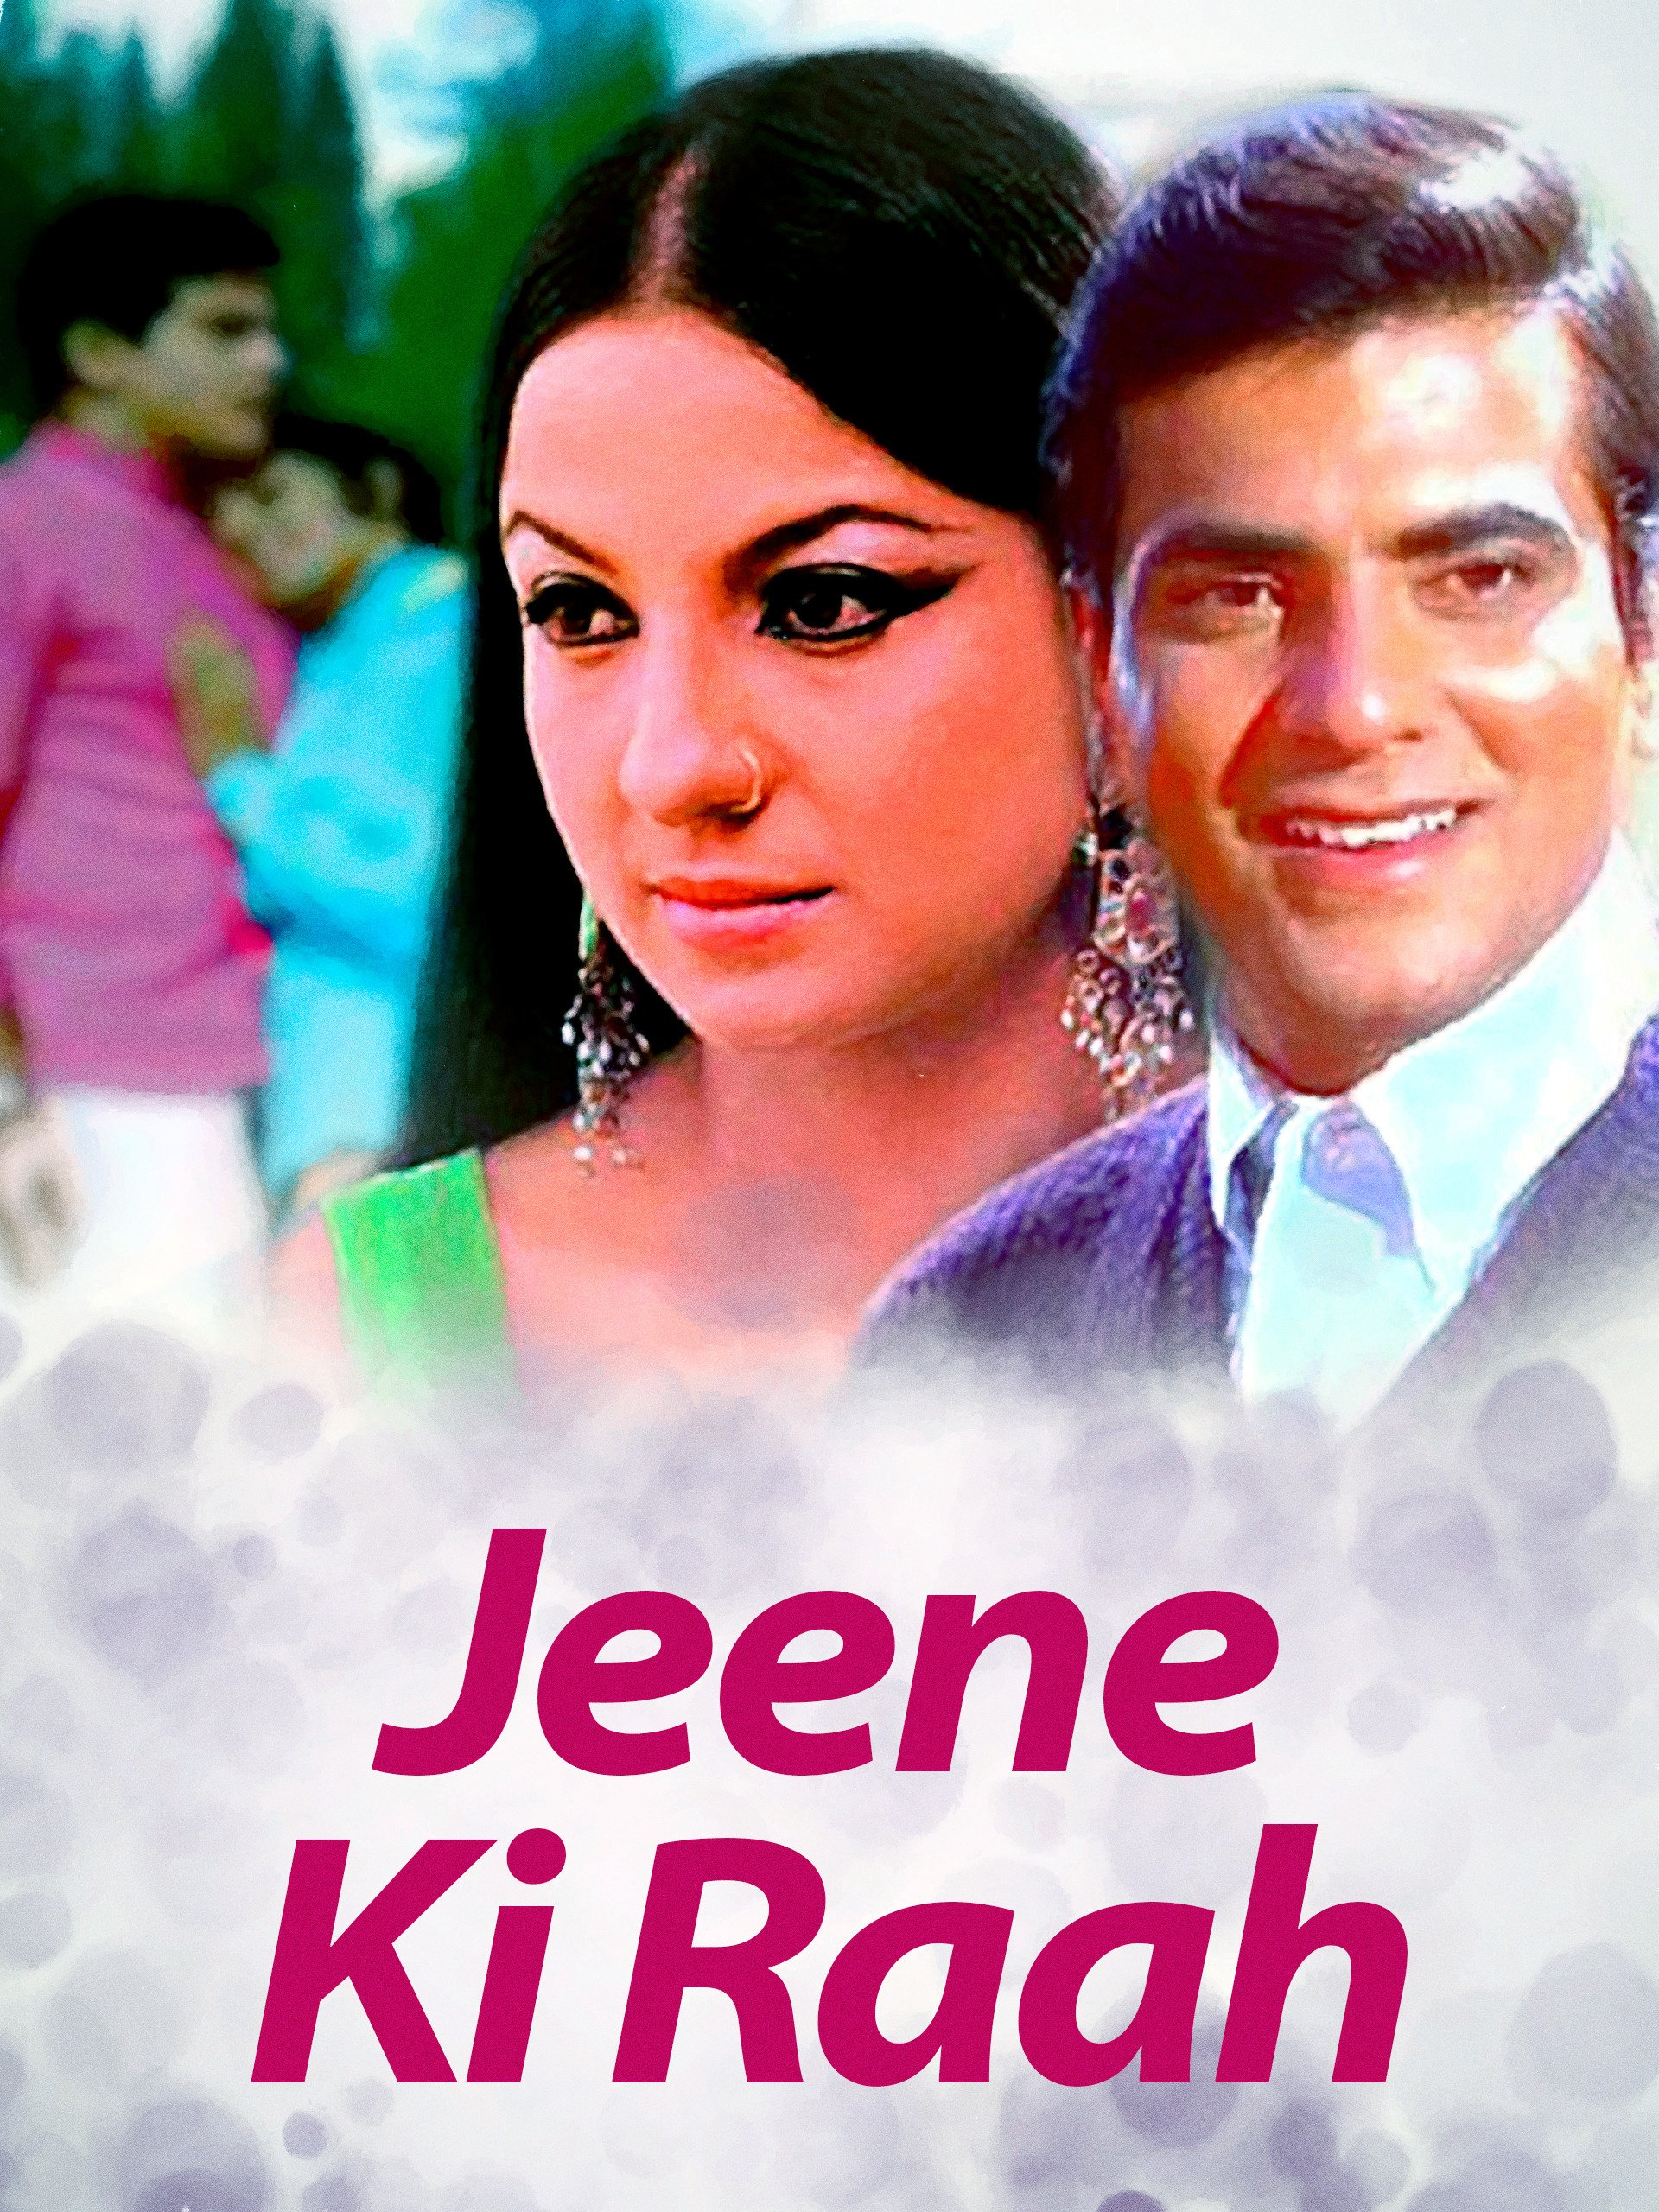 Jeene Ki Raah Movie Reviews Release Date Songs Music Images Official Trailers Videos Photos News Bollywood Hungama